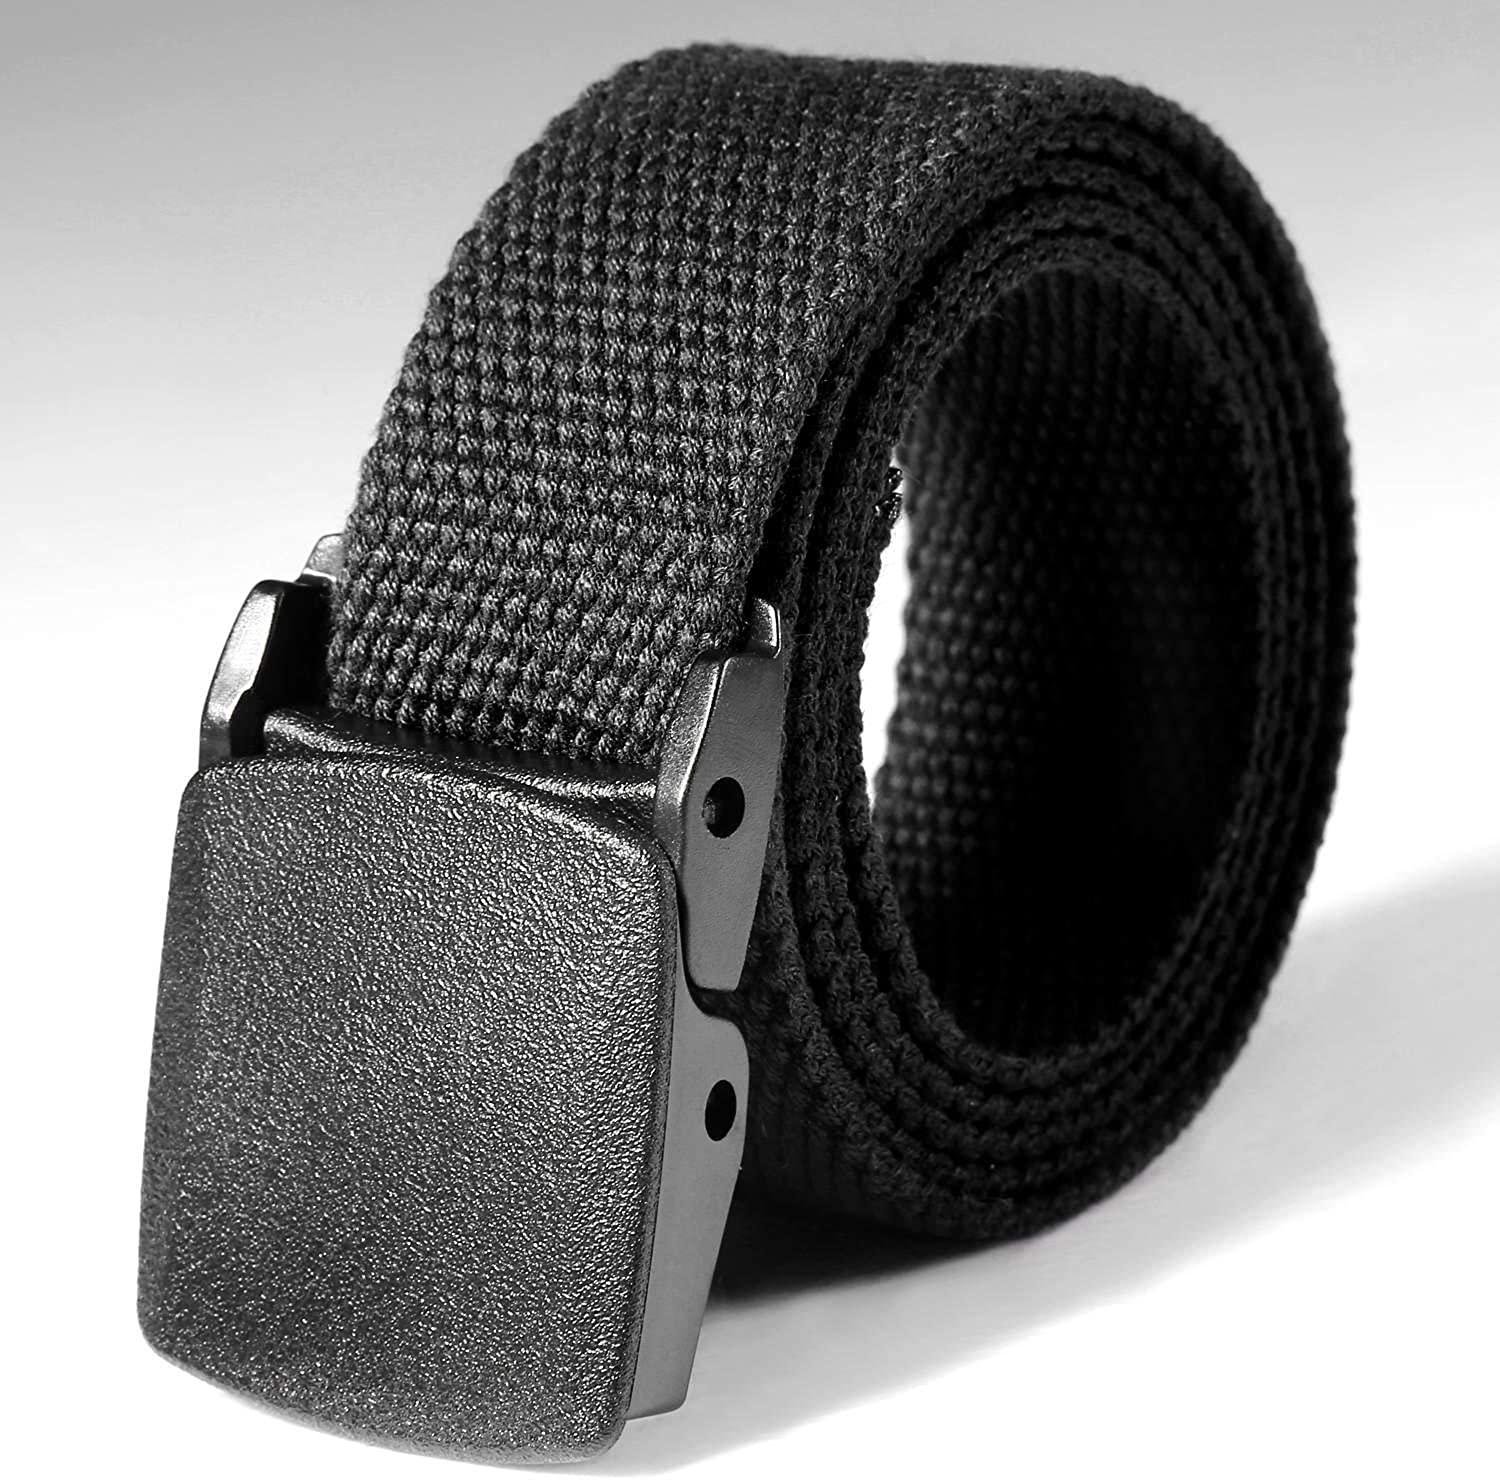 Mens Buckle Long Canvas Nylon Waist Web Belt Metal-free Security Check Belt Top